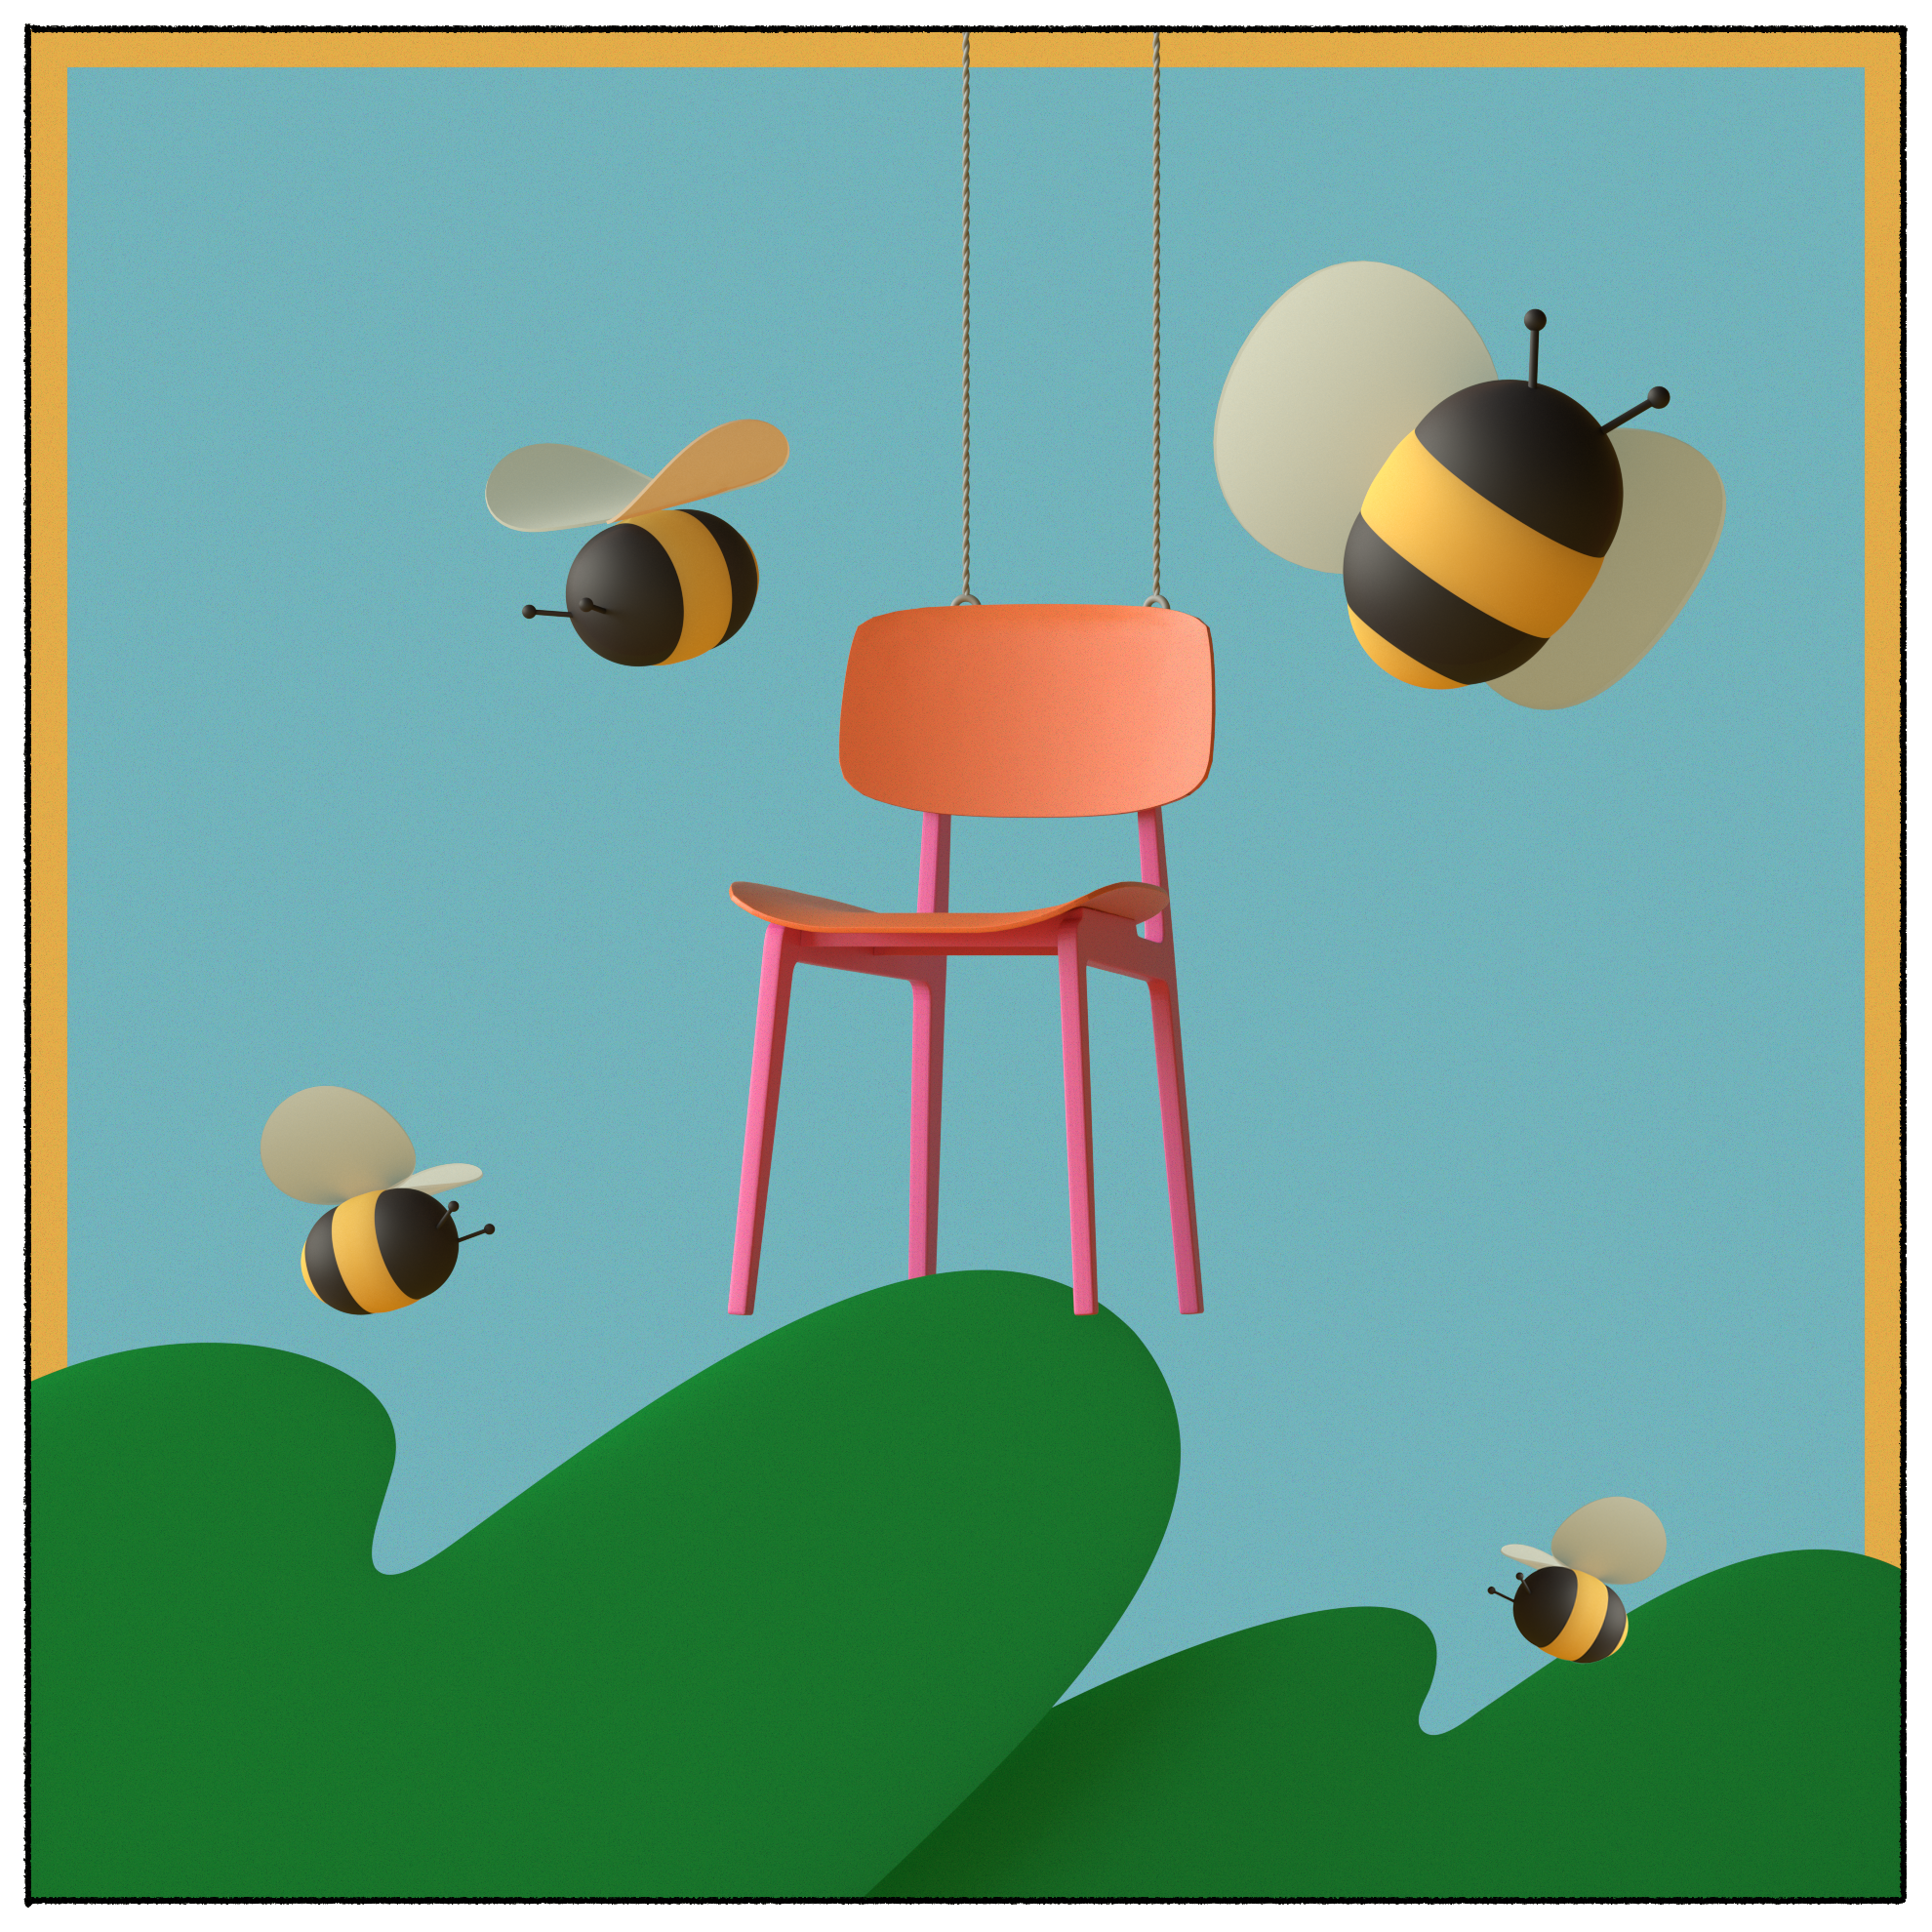 Chair_Bee.png